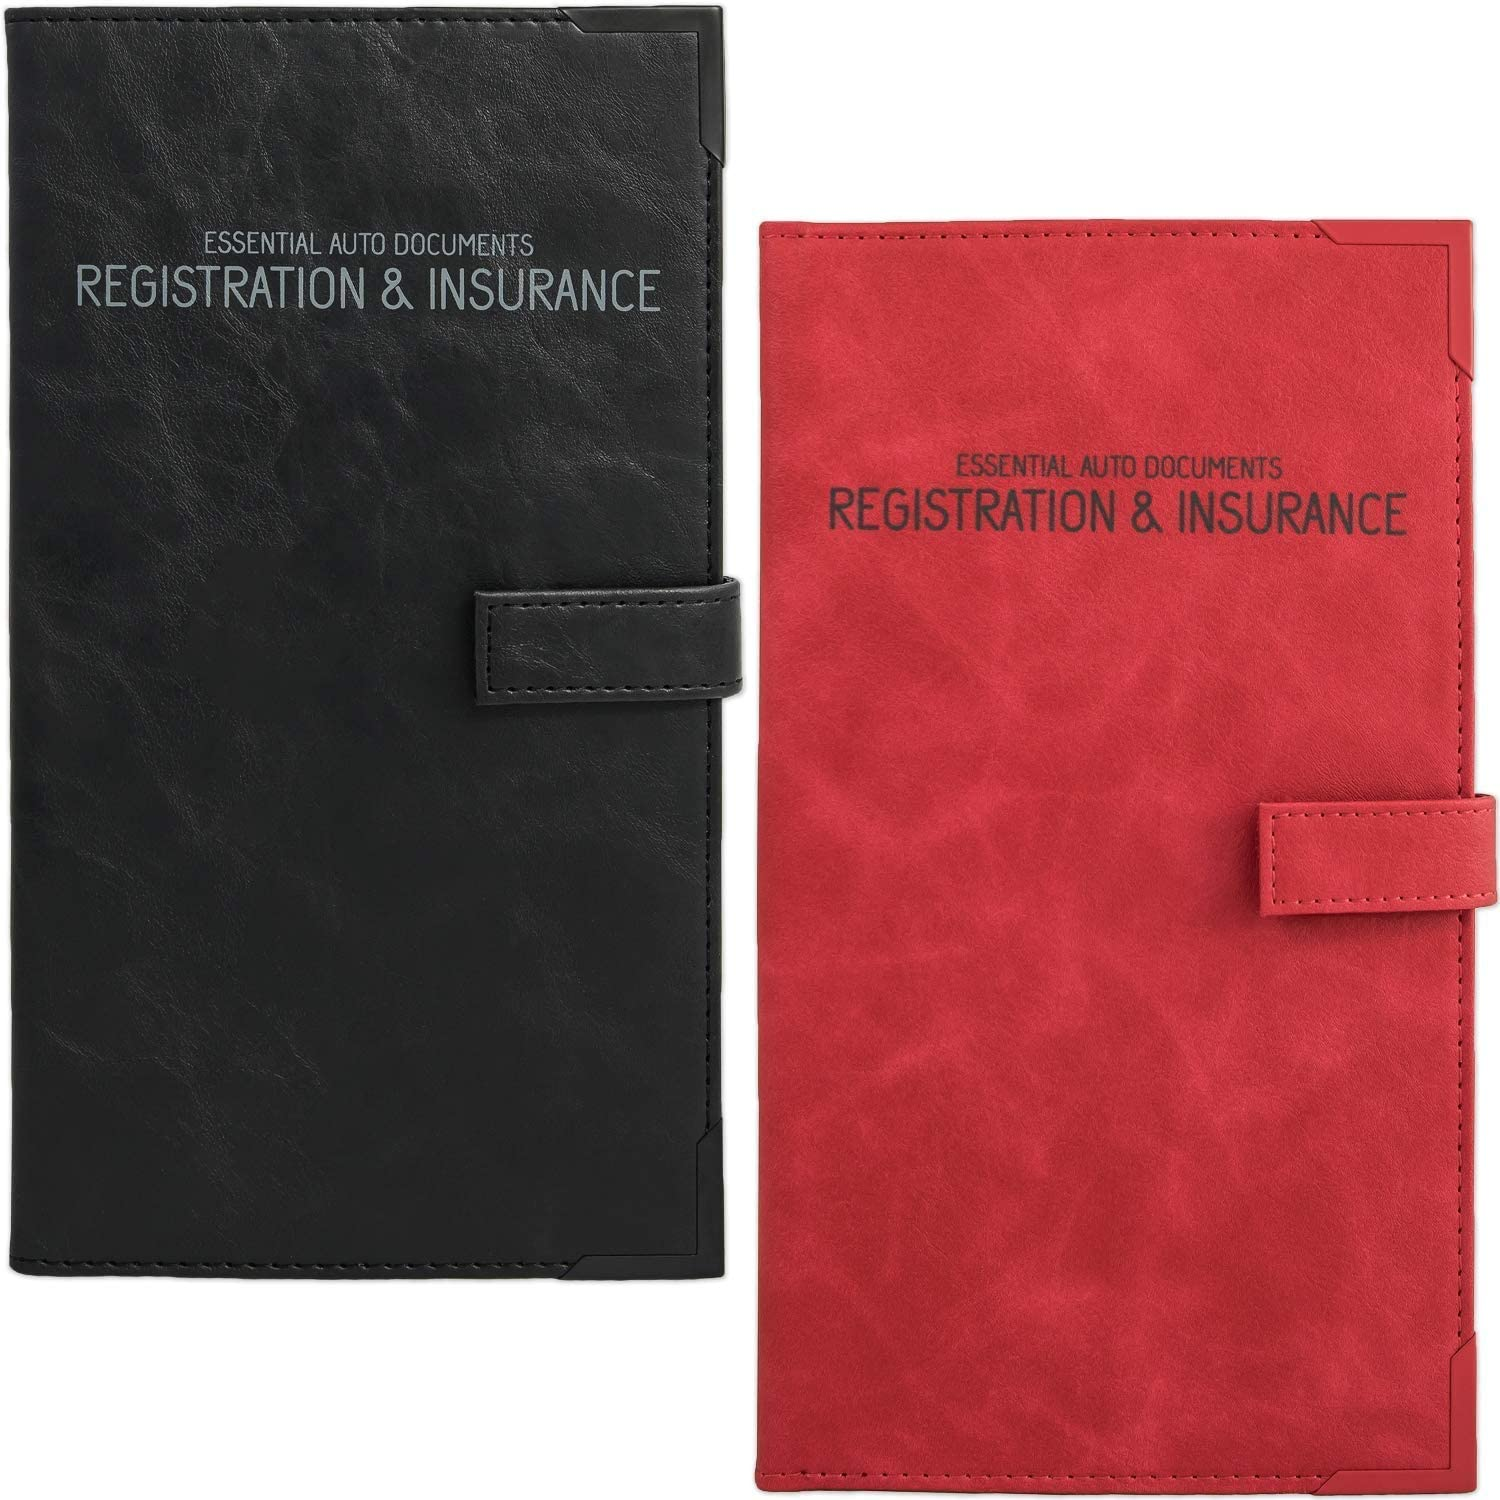 Auto Cheap Insurance and Registration Card Glove Holder Box Max 56% OFF - Vehicle